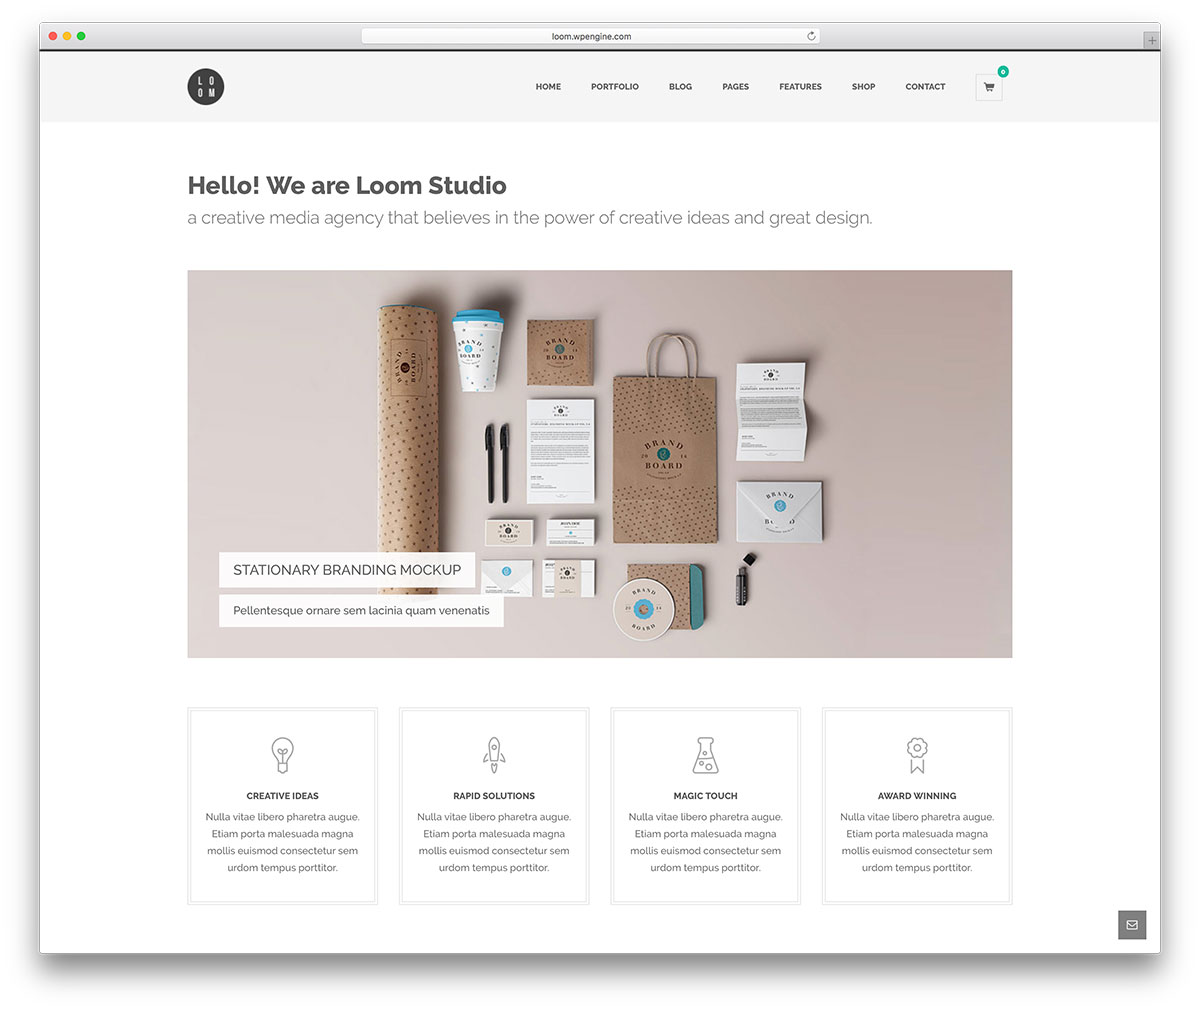 loom-simple-business-site-template